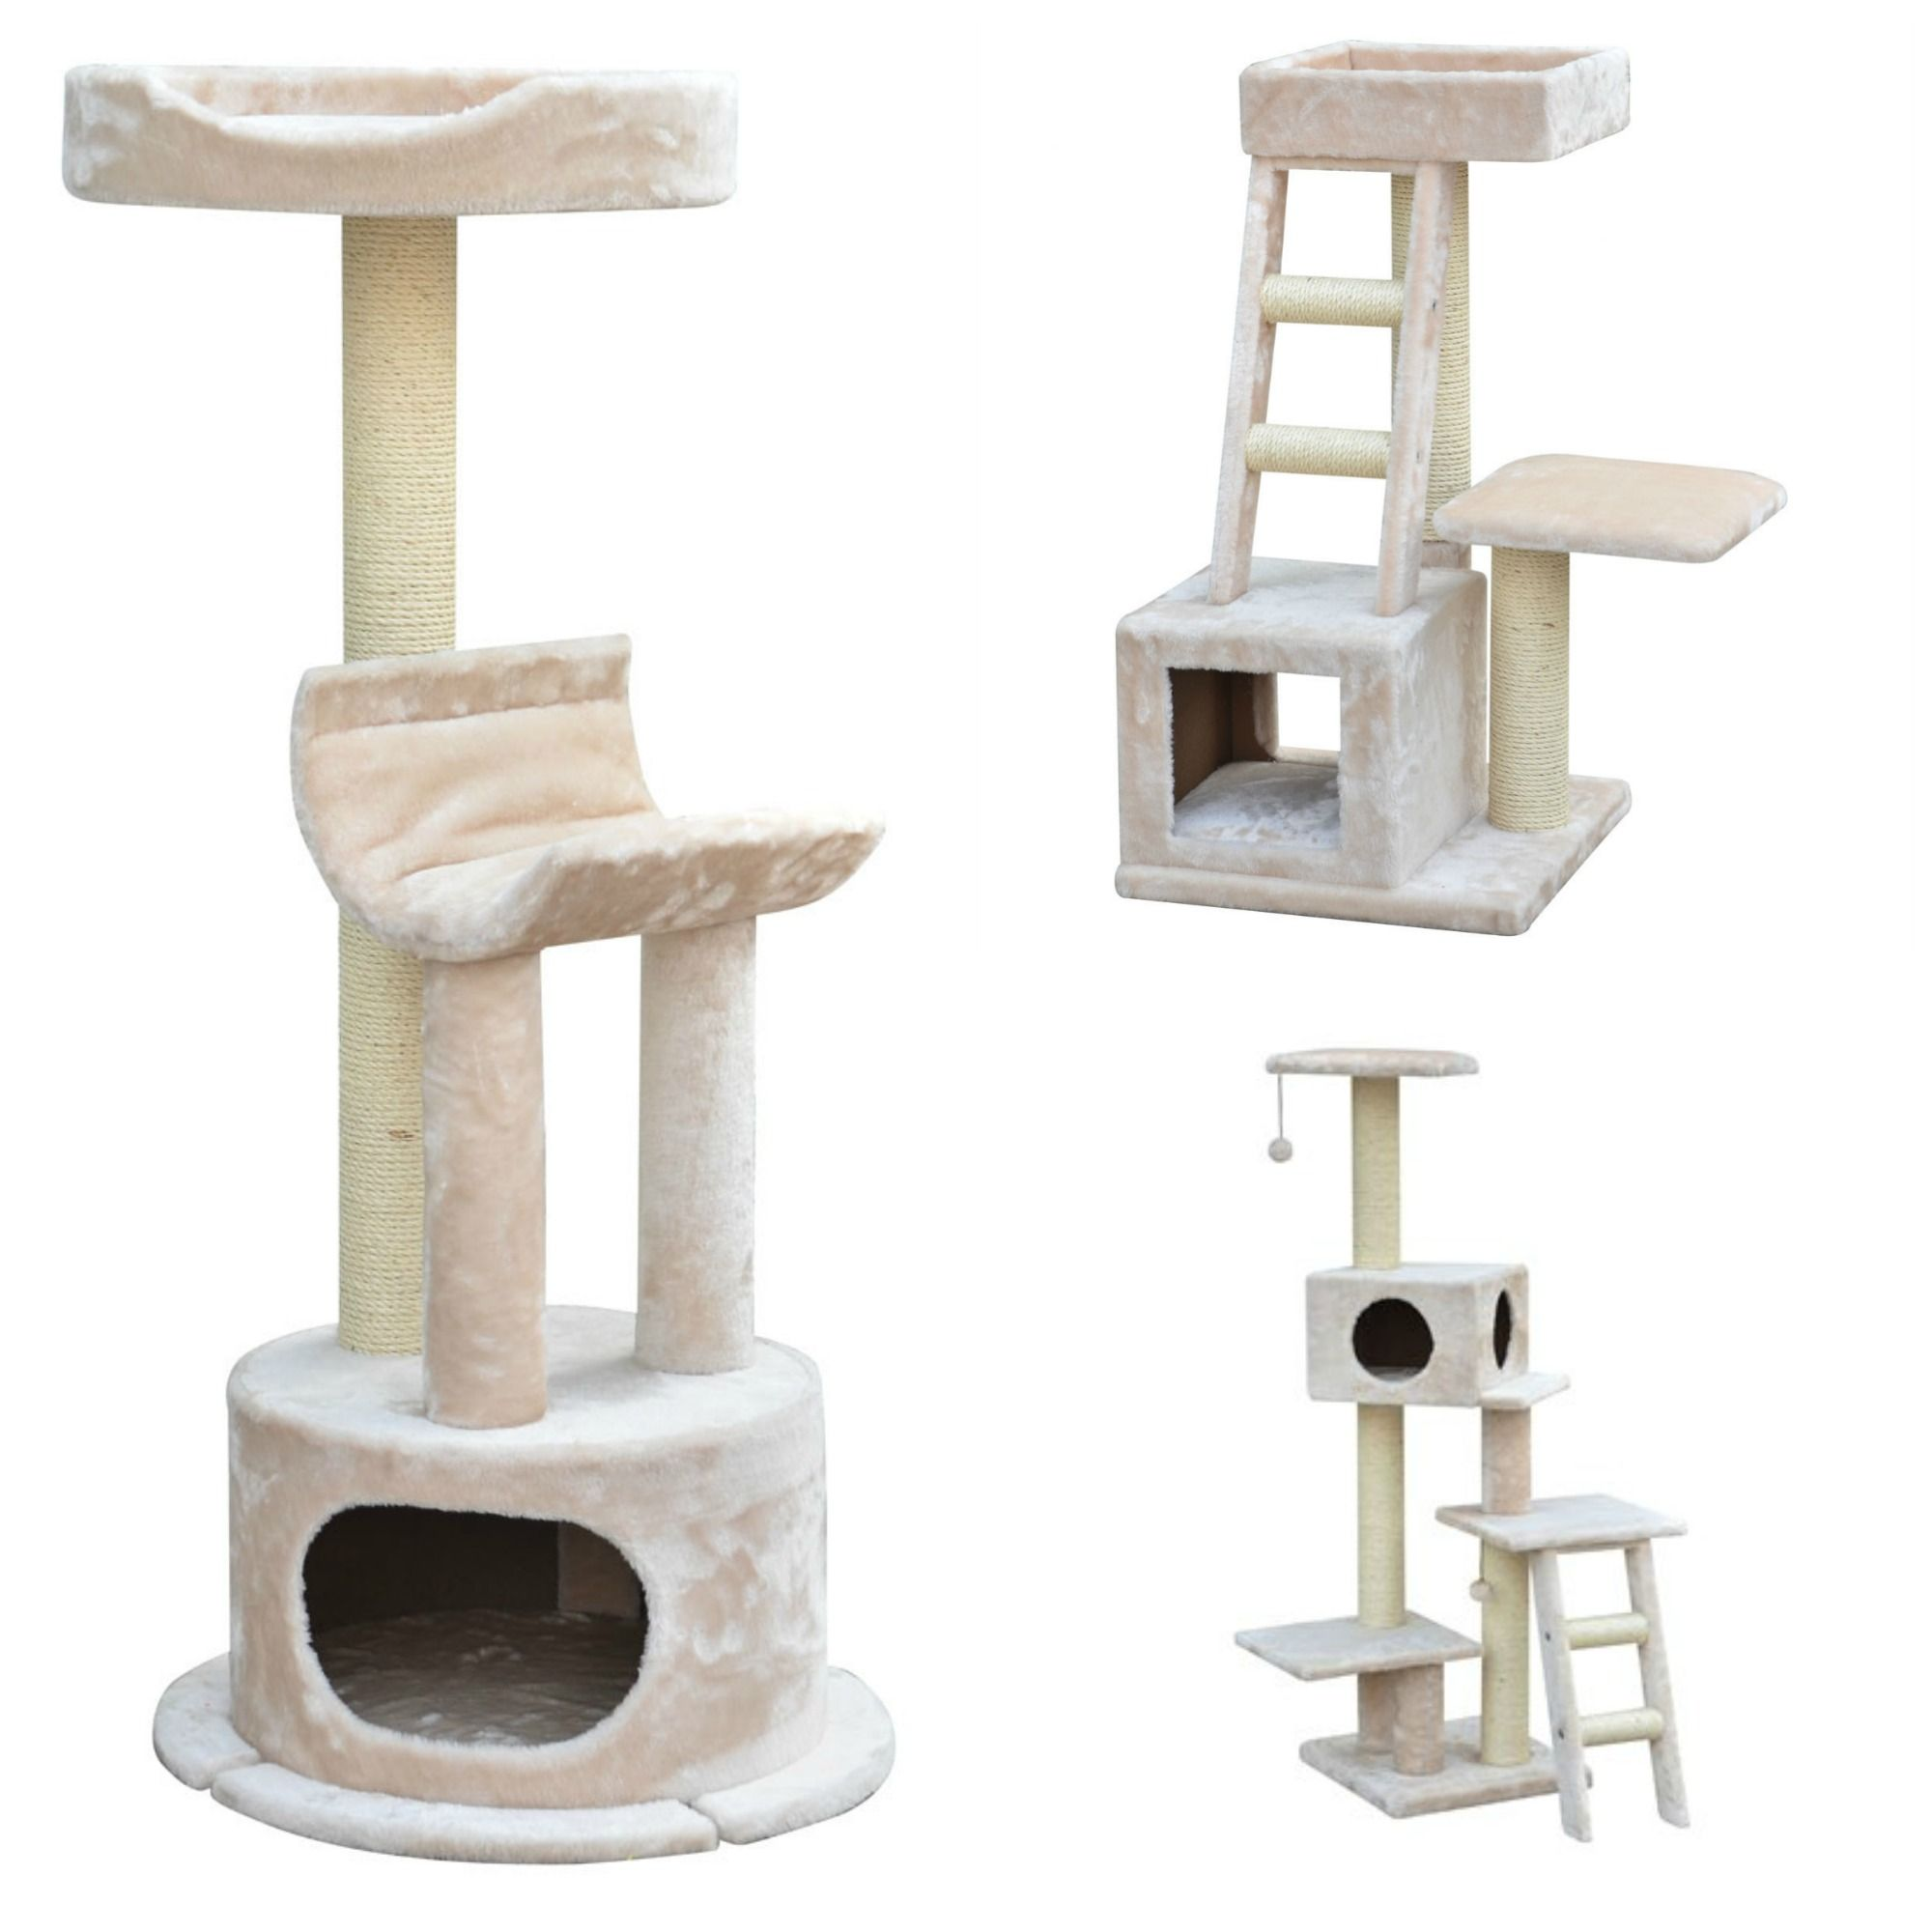 Modern Fleece Collection from Pet Pals Pet Furniture  www.fastfashionpets.ecrater.com  626-575-9366 free shipping